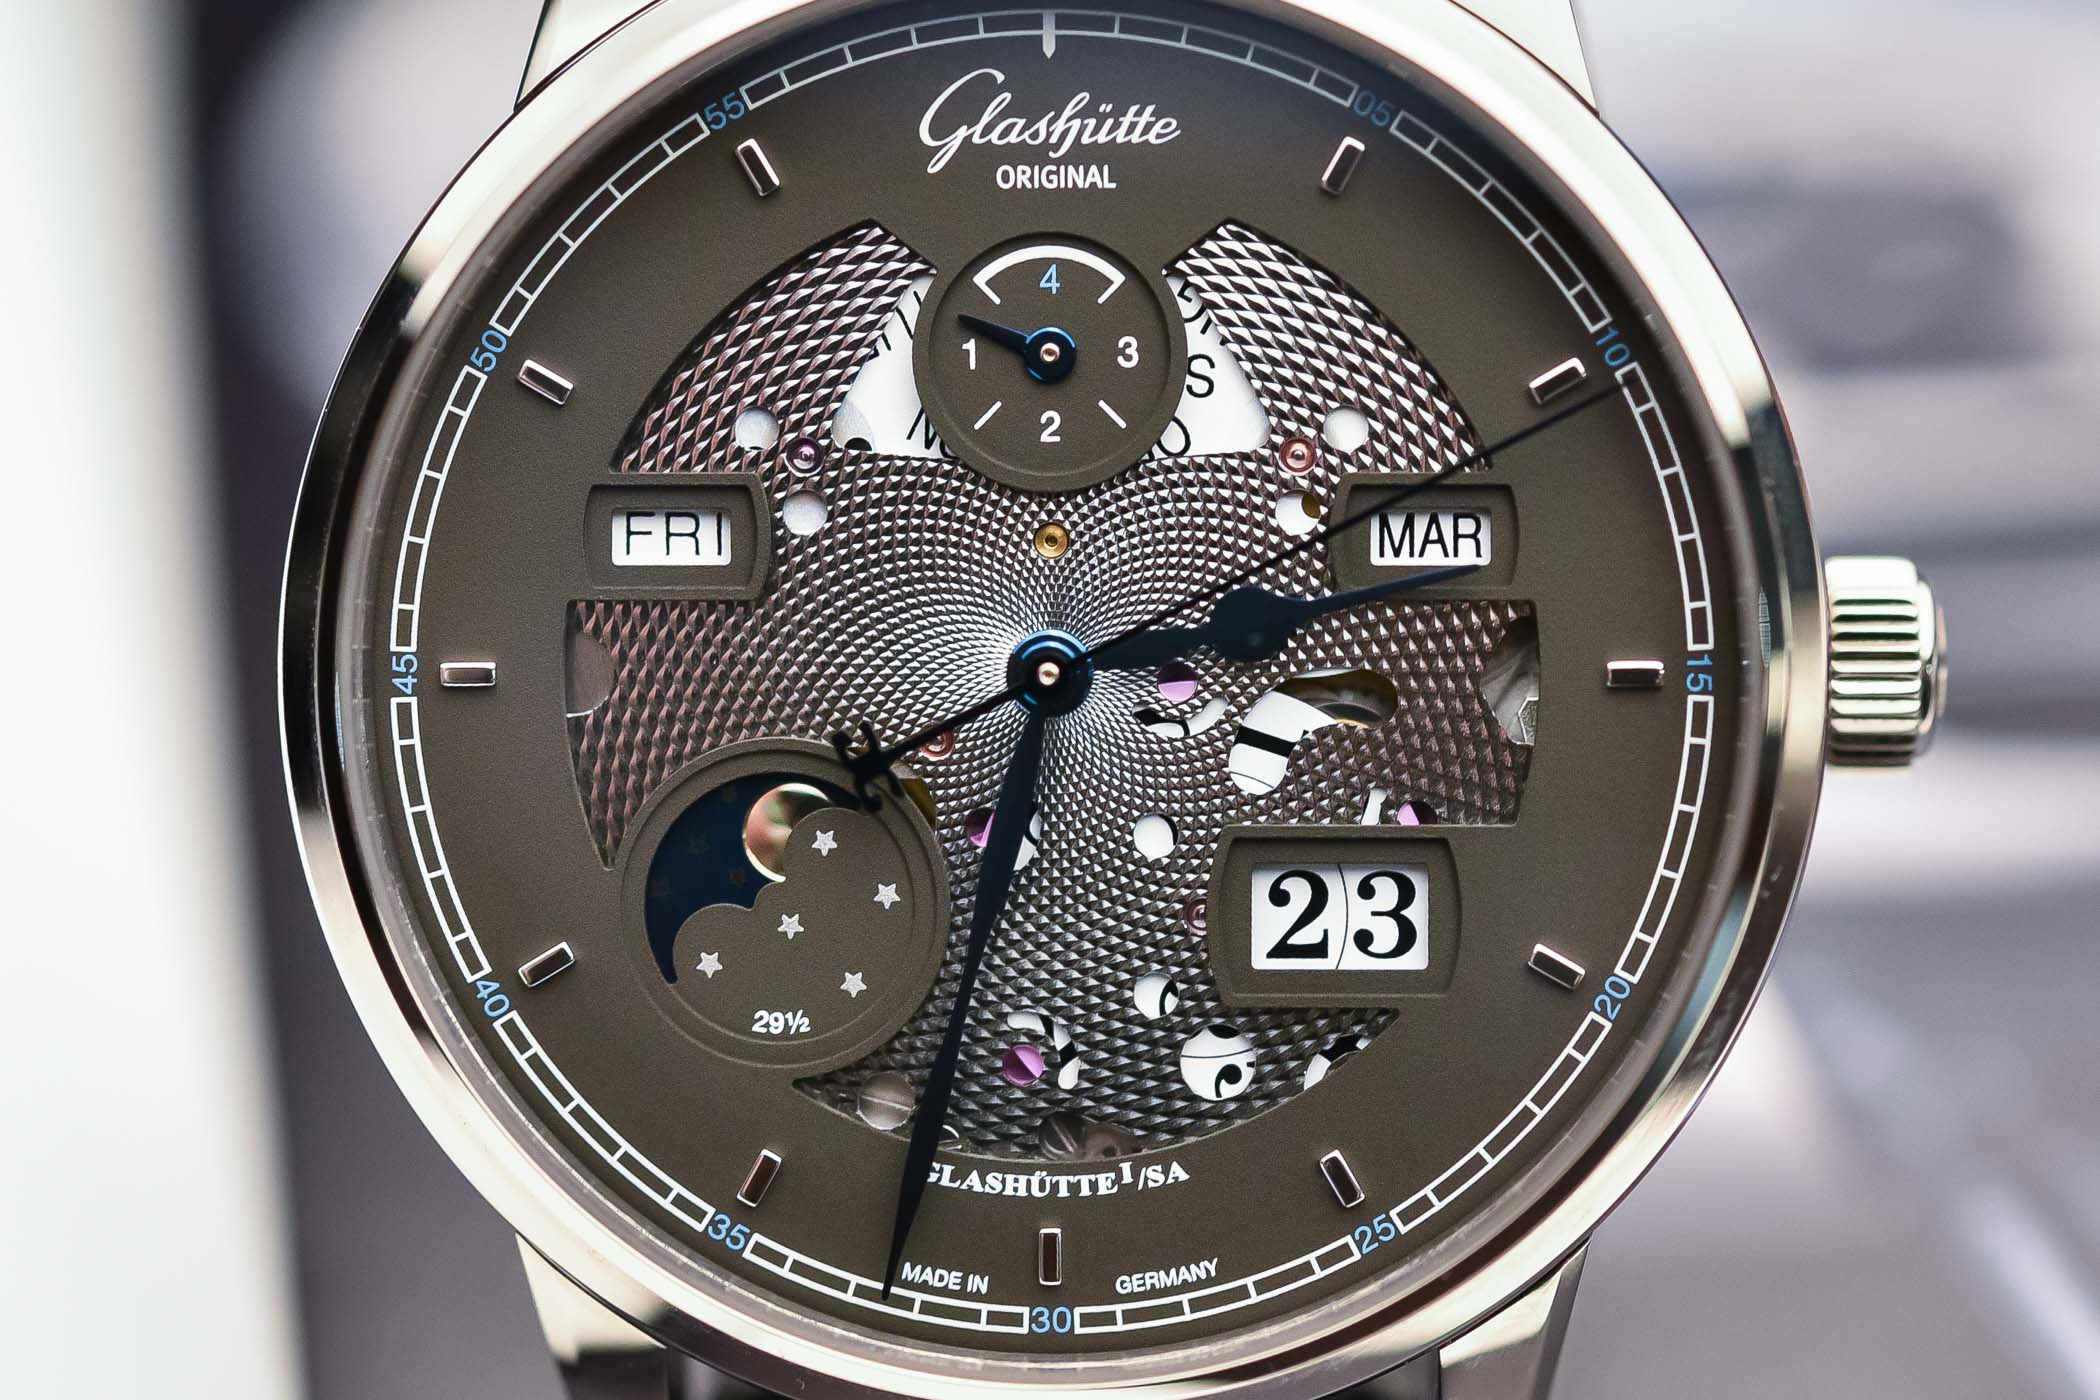 Glashutte Original Senator Excellence Perpetual Calendar Limited Edition Openworked - Baselworld 2018